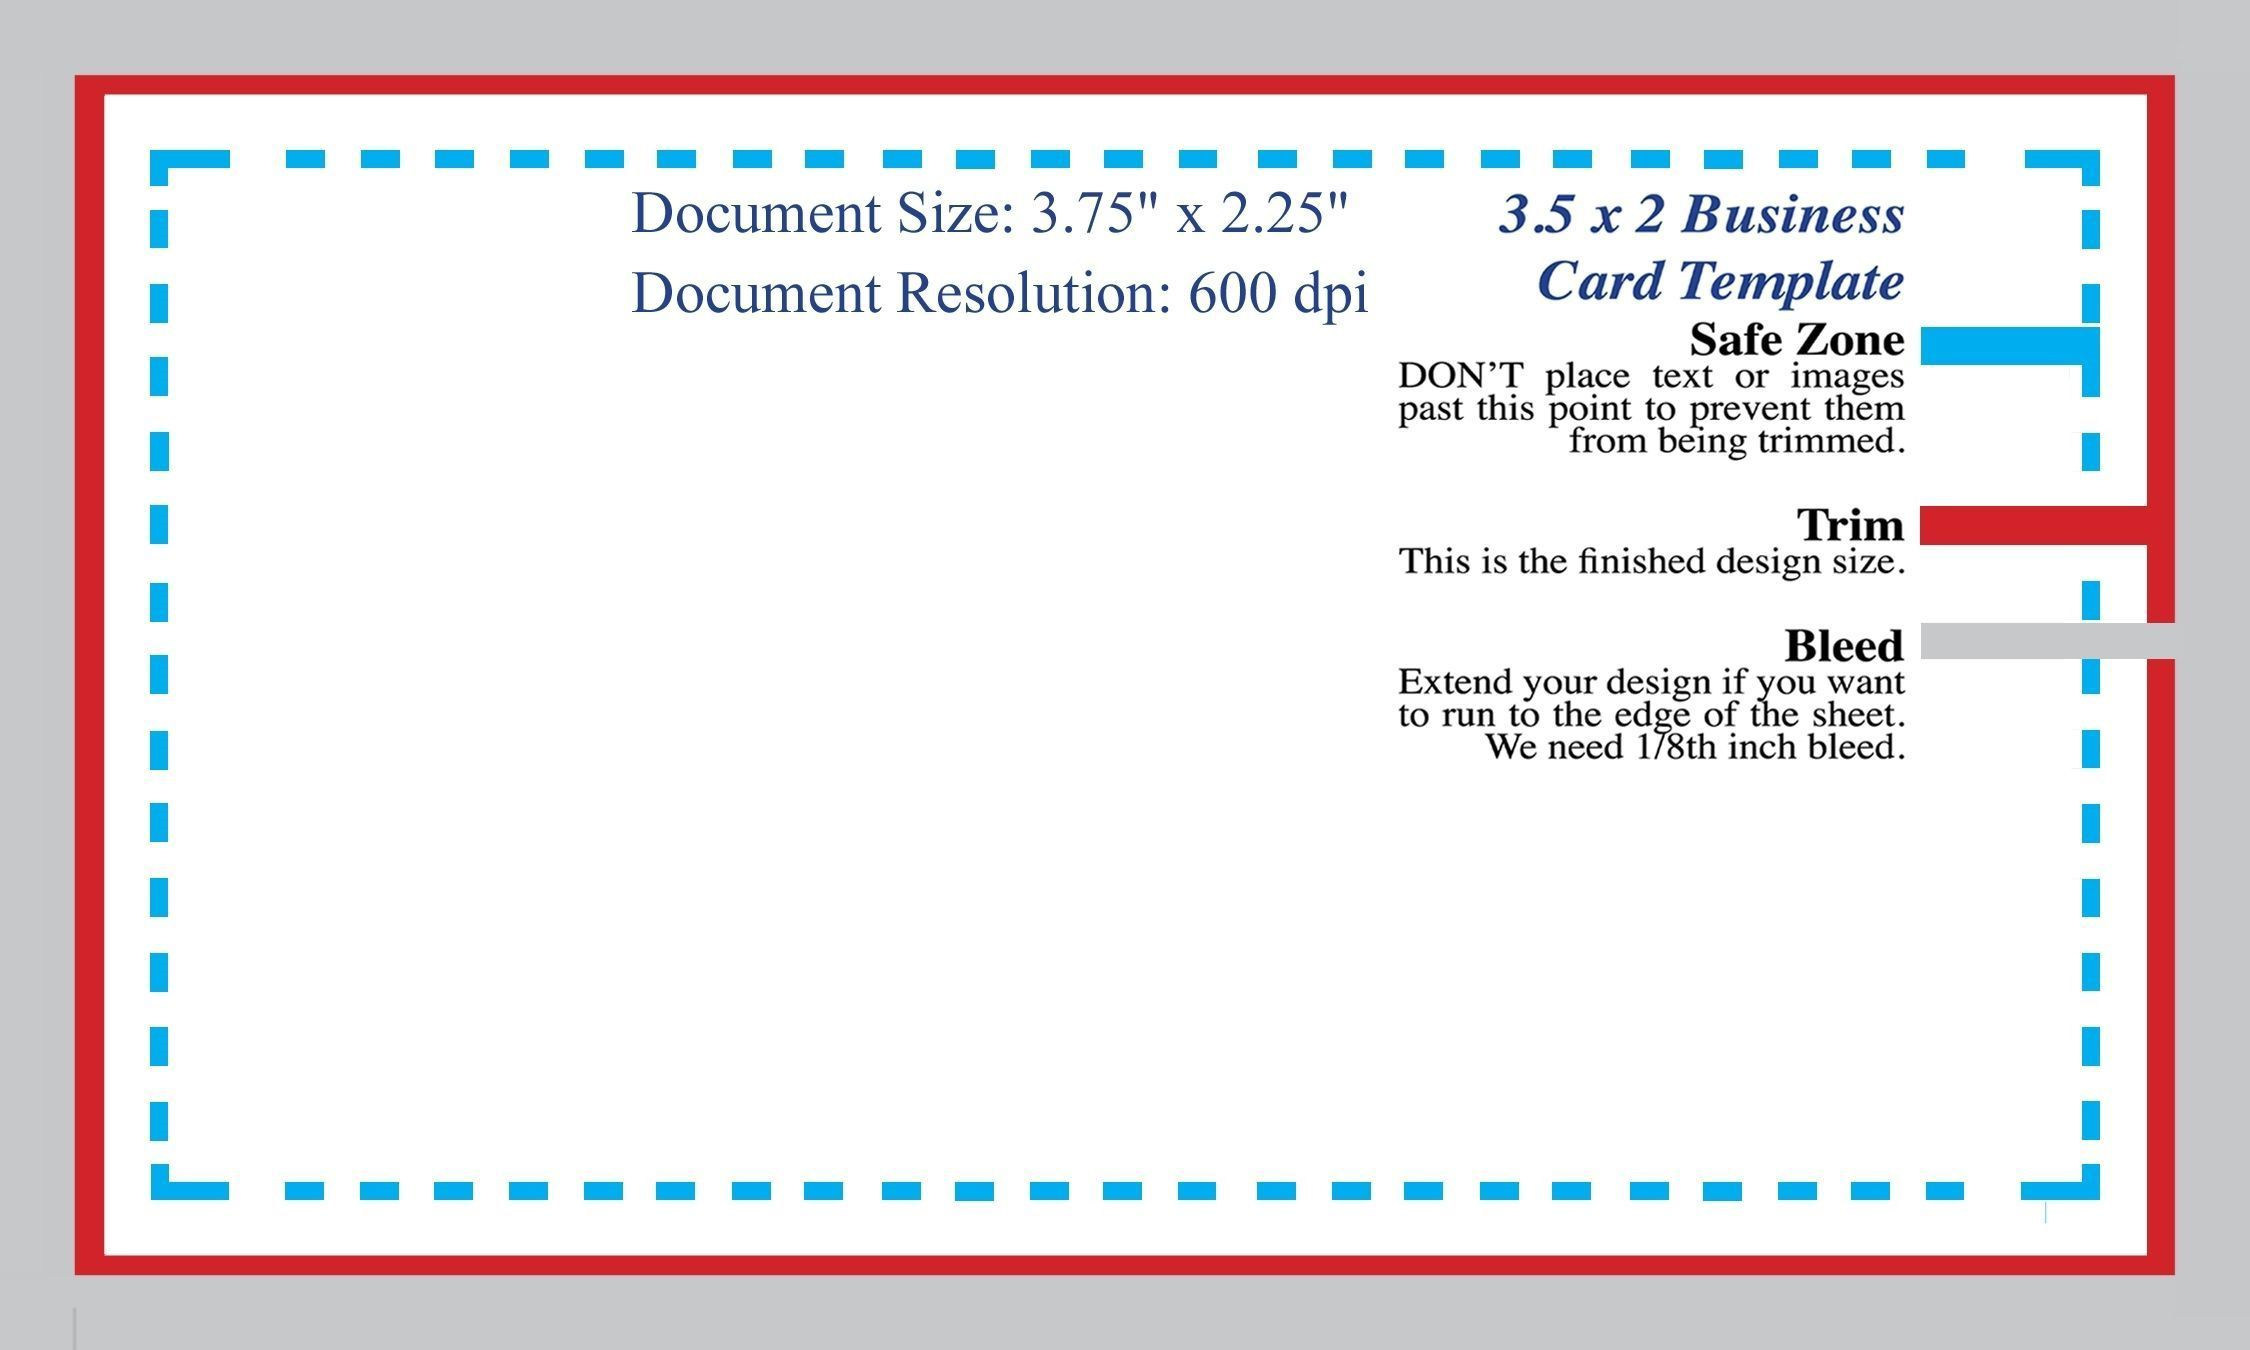 001 Incredible Blank Busines Card Template Photoshop Image  Free Download PsdFull